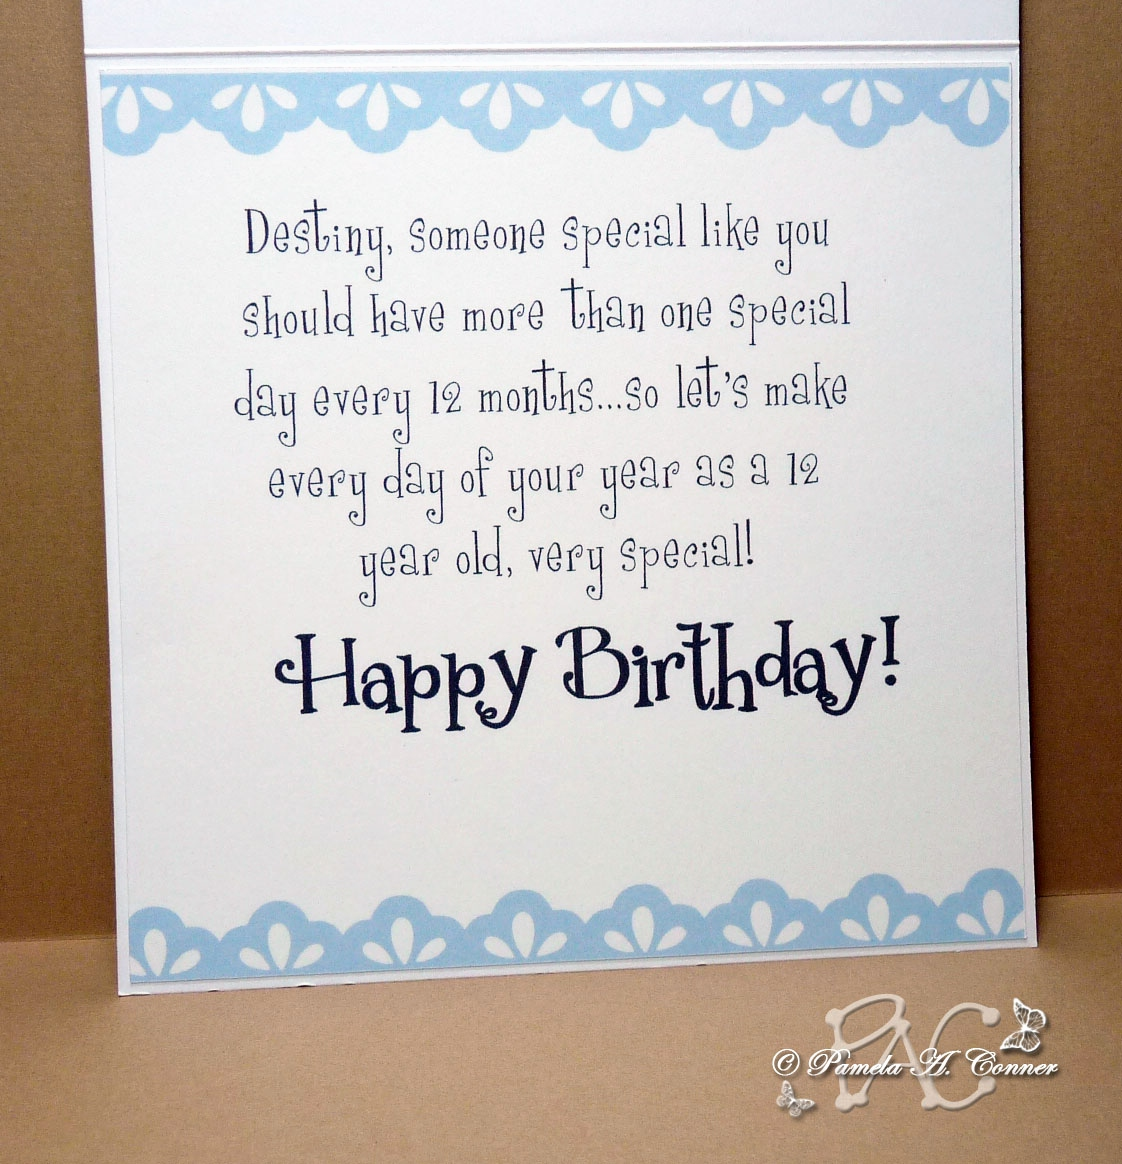 birthday card for 2 year old son ; birthday-cards-for-2-year-old-grandson-awesome-colors-2-year-old-birthday-card-2-year-old-son-birthday-card-2-of-birthday-cards-for-2-year-old-grandson